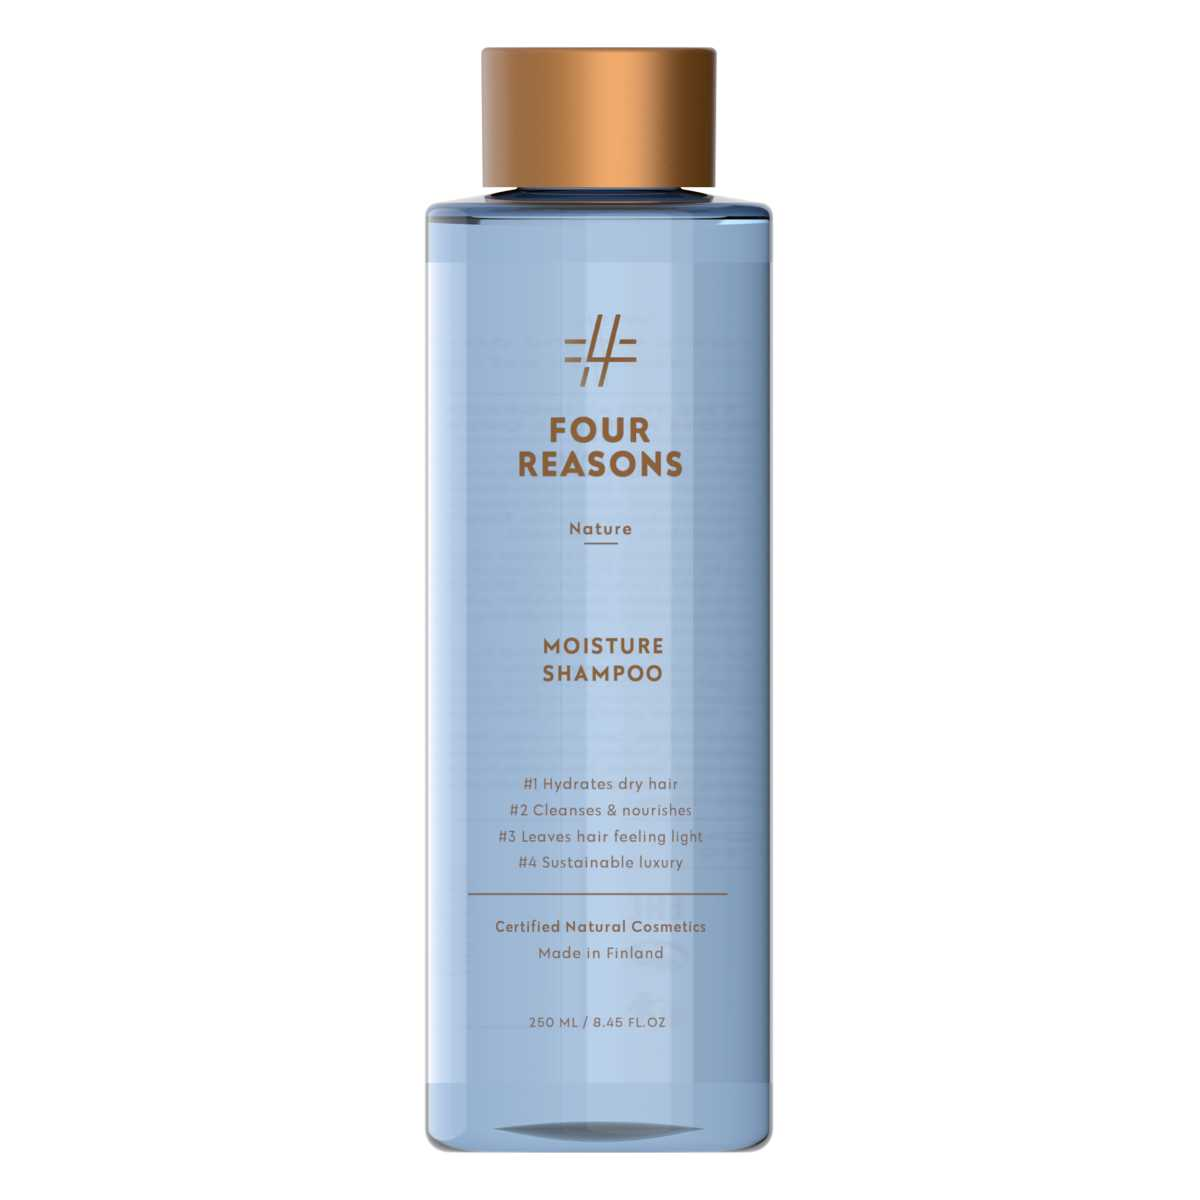 Four-Reasons-Nature-Moisture-Shampoo